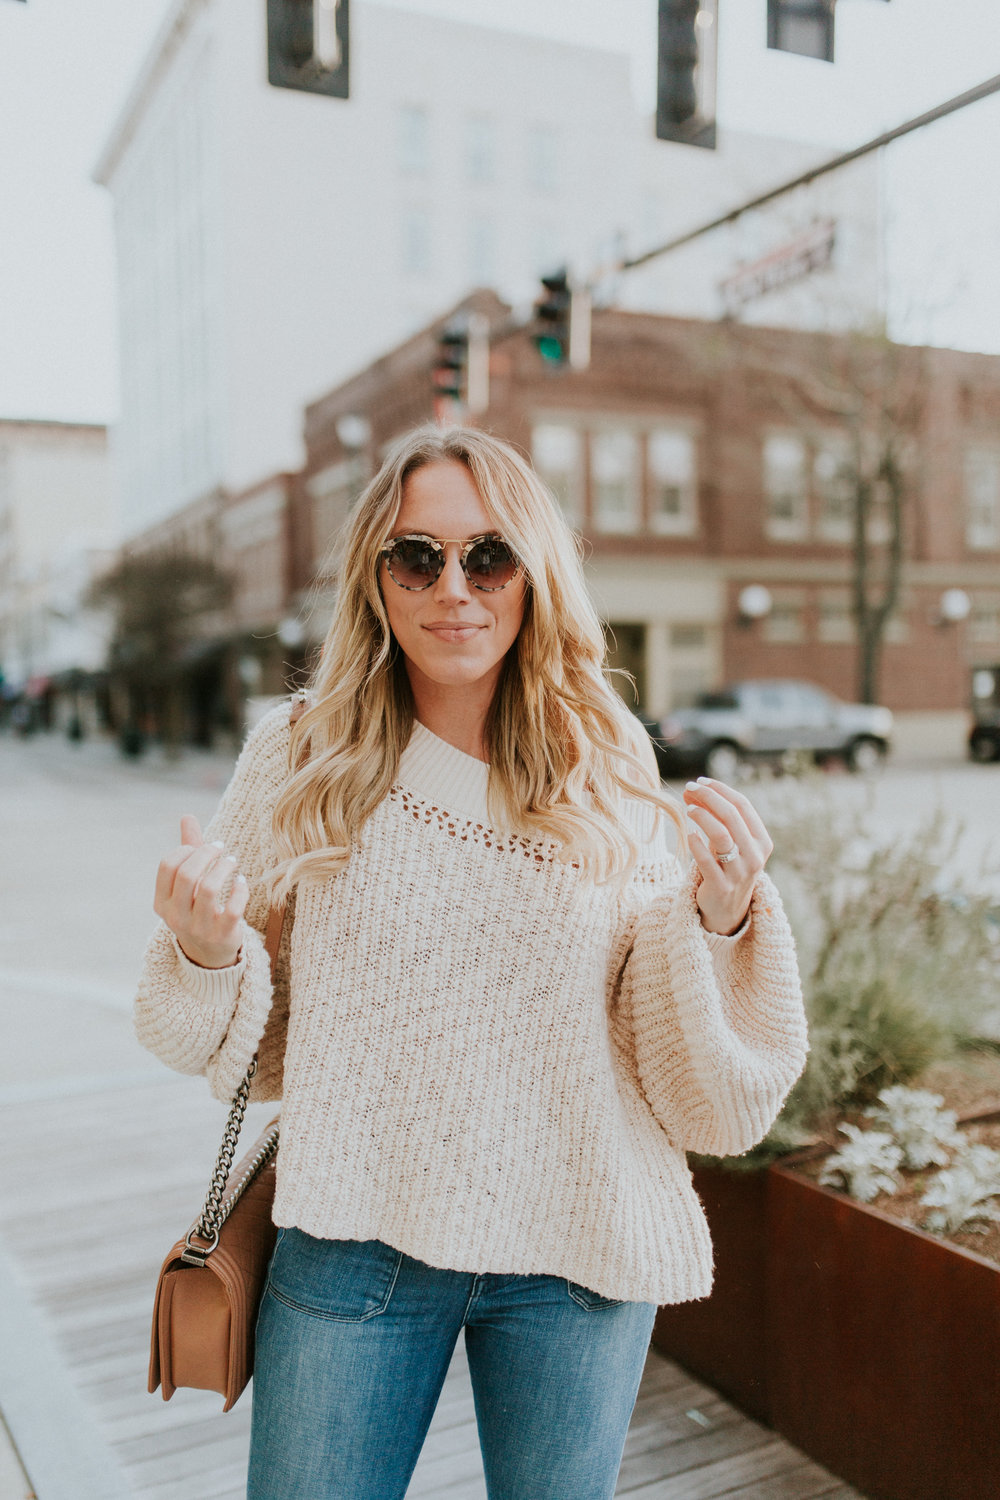 Blogger Gracefully Taylored in Free People Sweater & Bralette(10).jpg